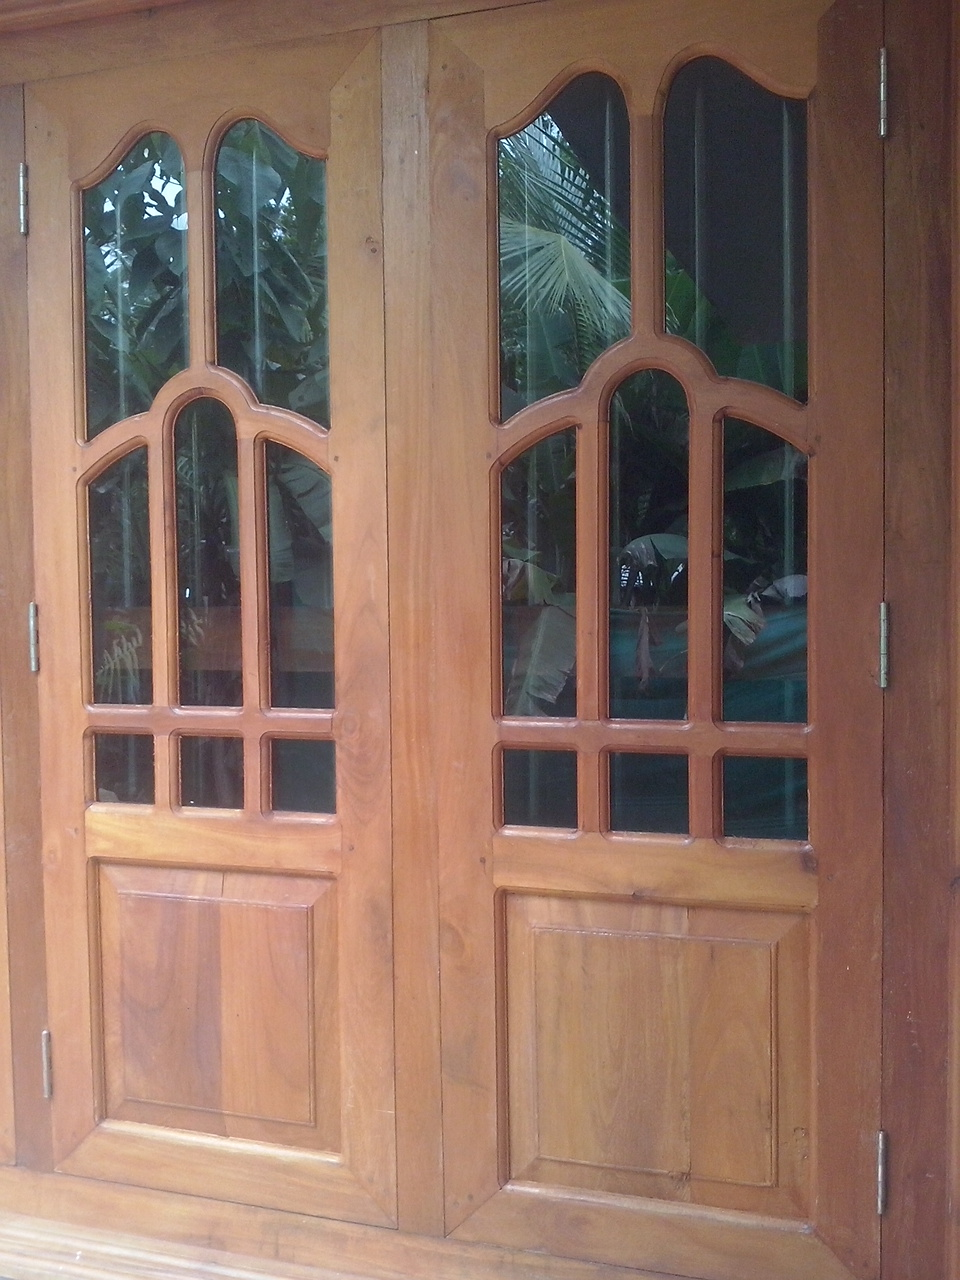 Bavas wood works kerala style wooden window door designs for Wood doors and windows